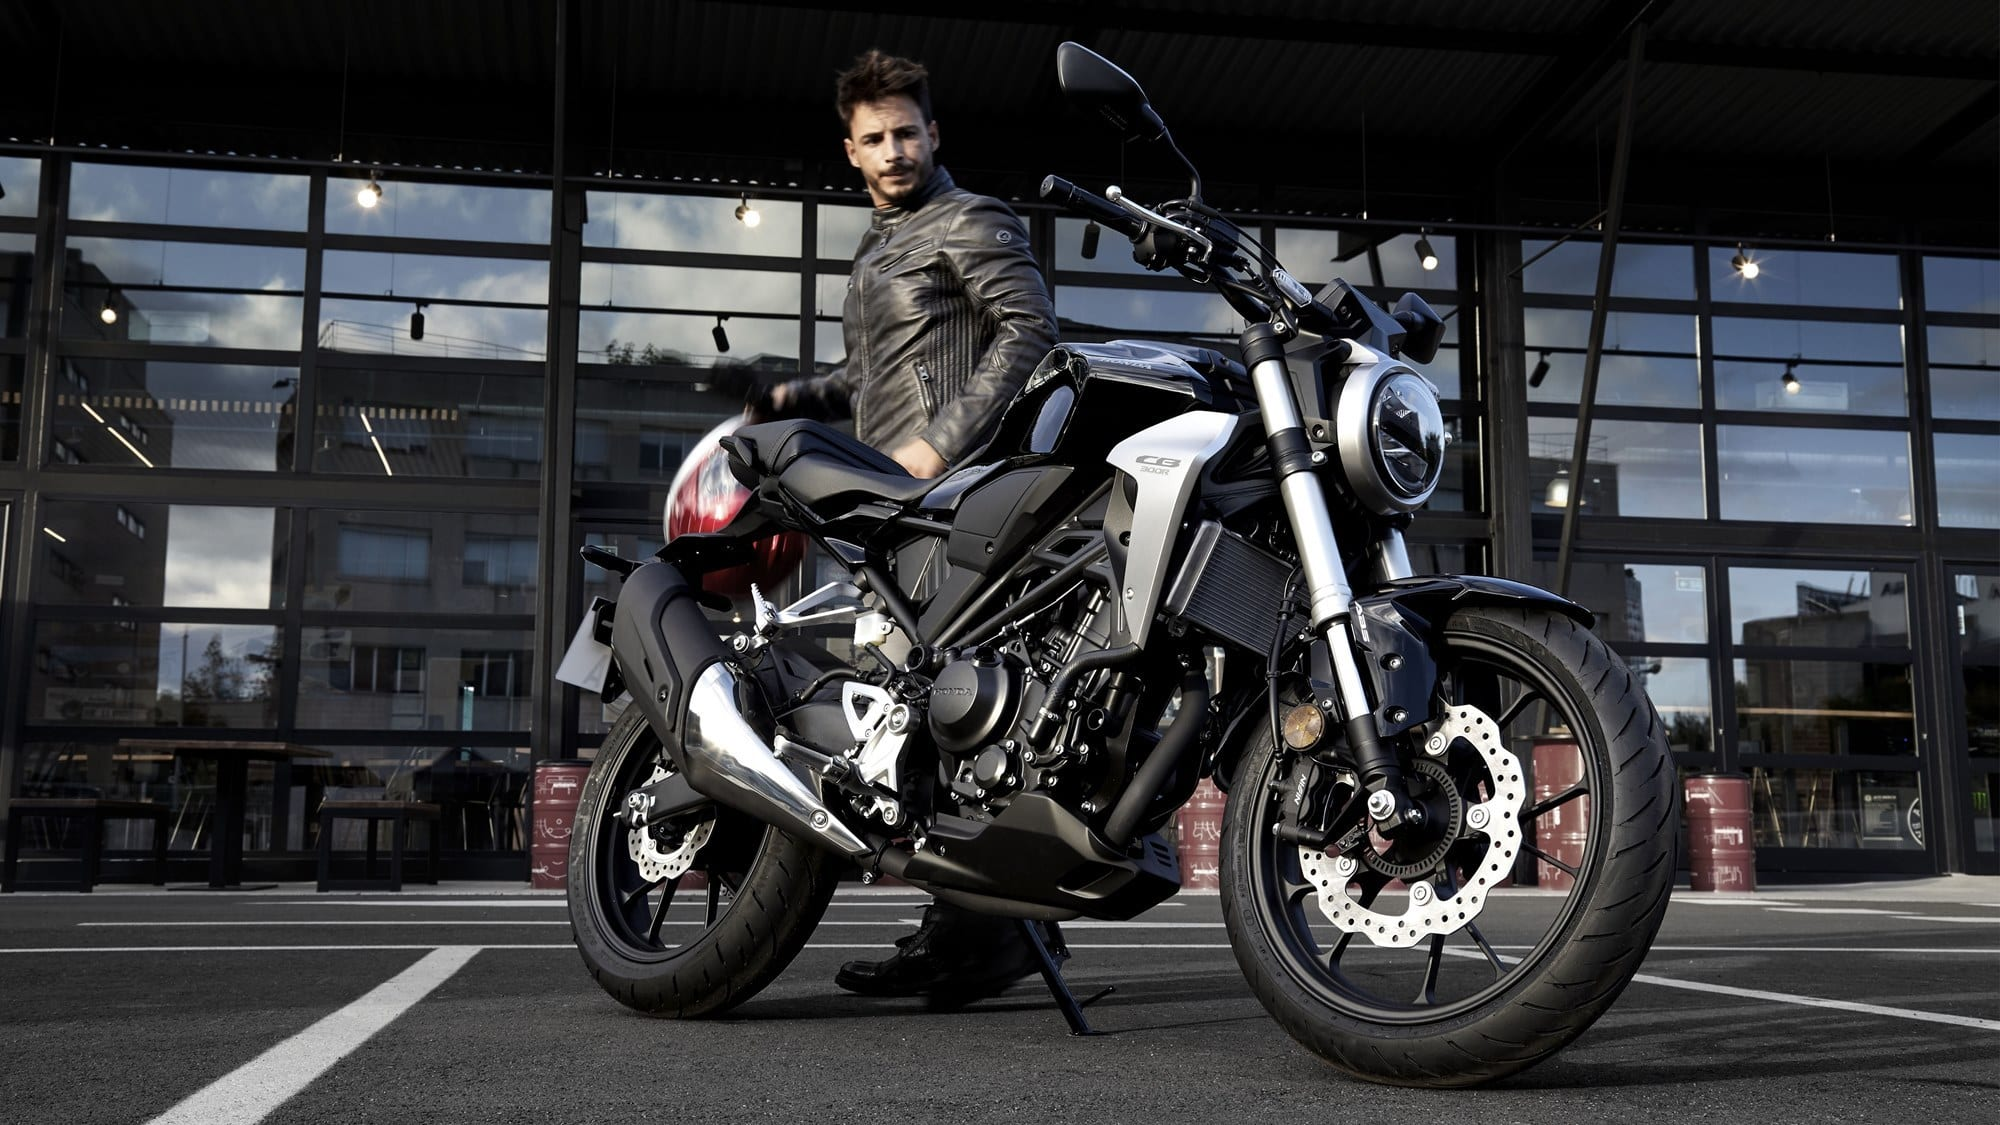 The 11 Best Fuel Efficient Motorcycles You Can Buy in 2020